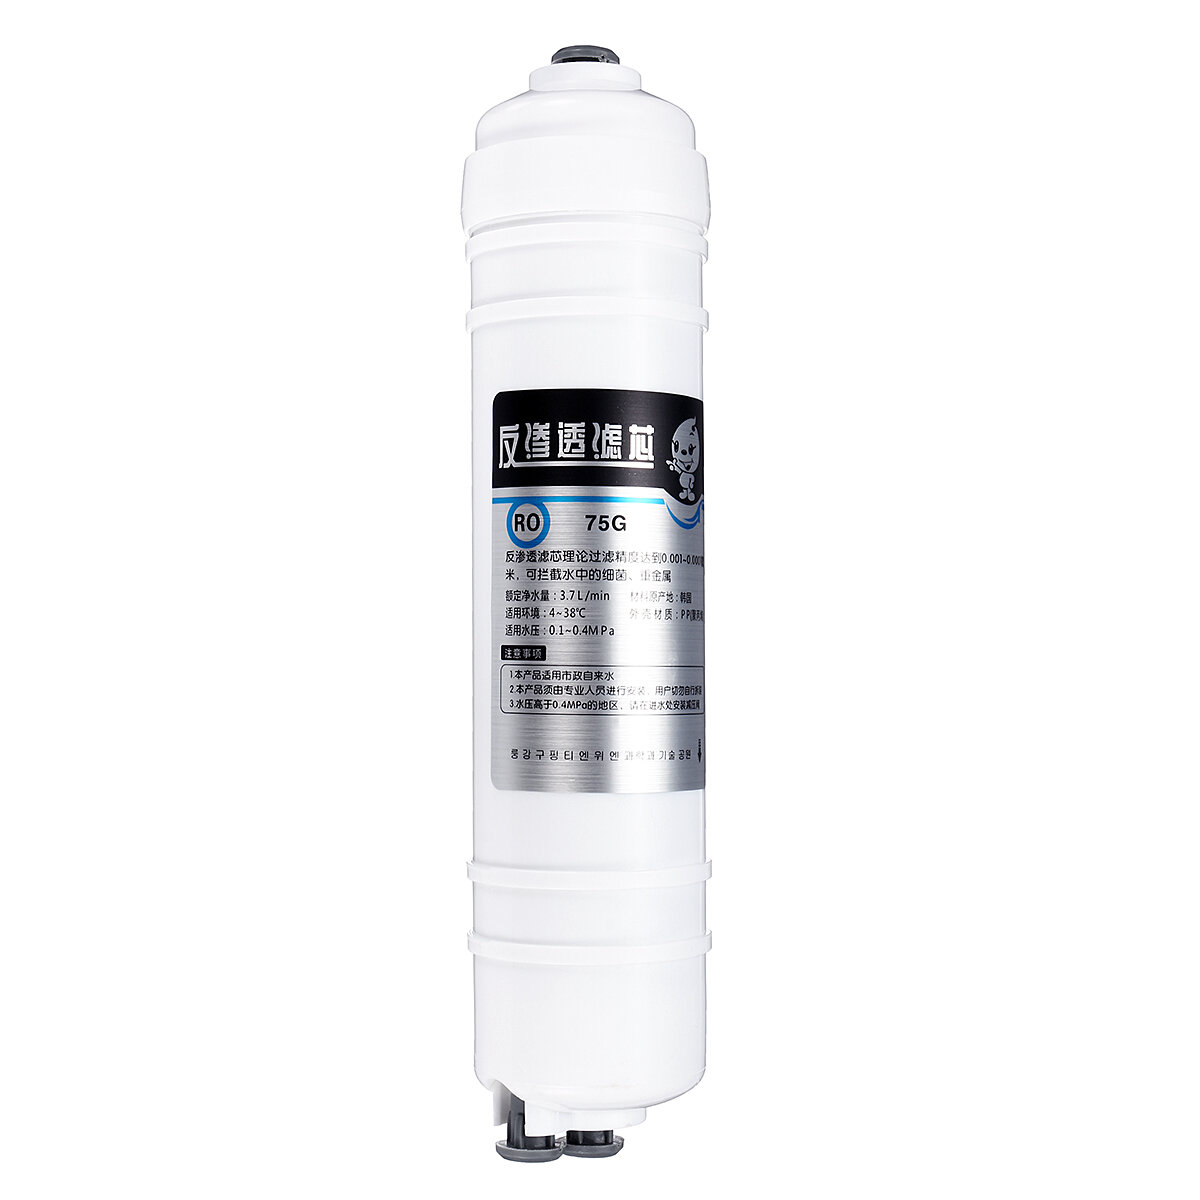 75g Water Filter Ro Membrane Filter For Pure Water